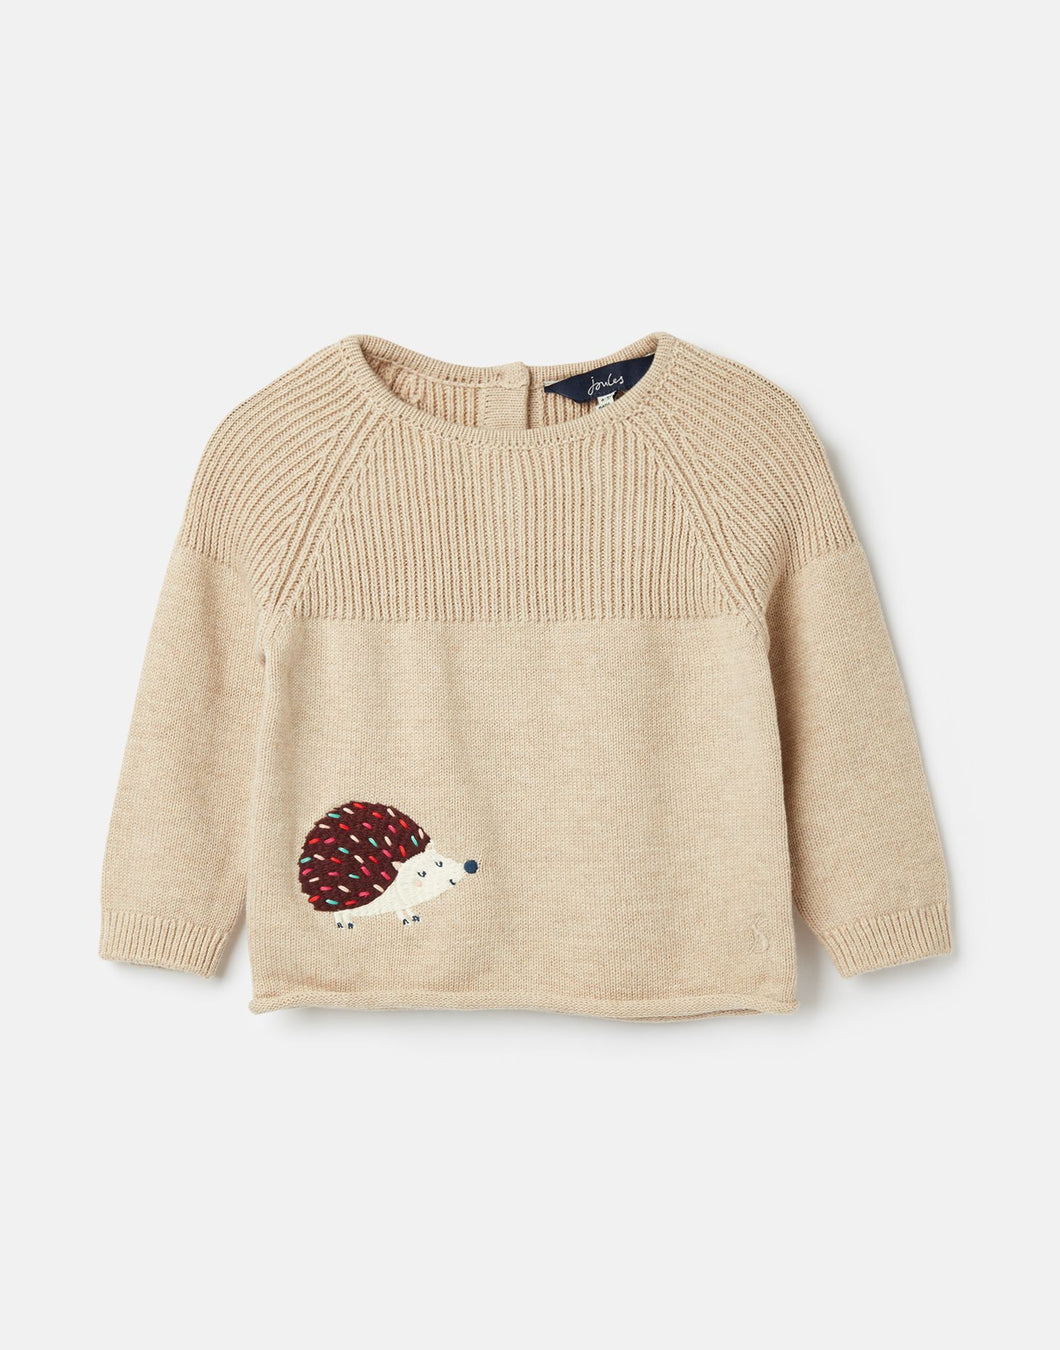 Aubrey Knitted Hedgehog Sweater